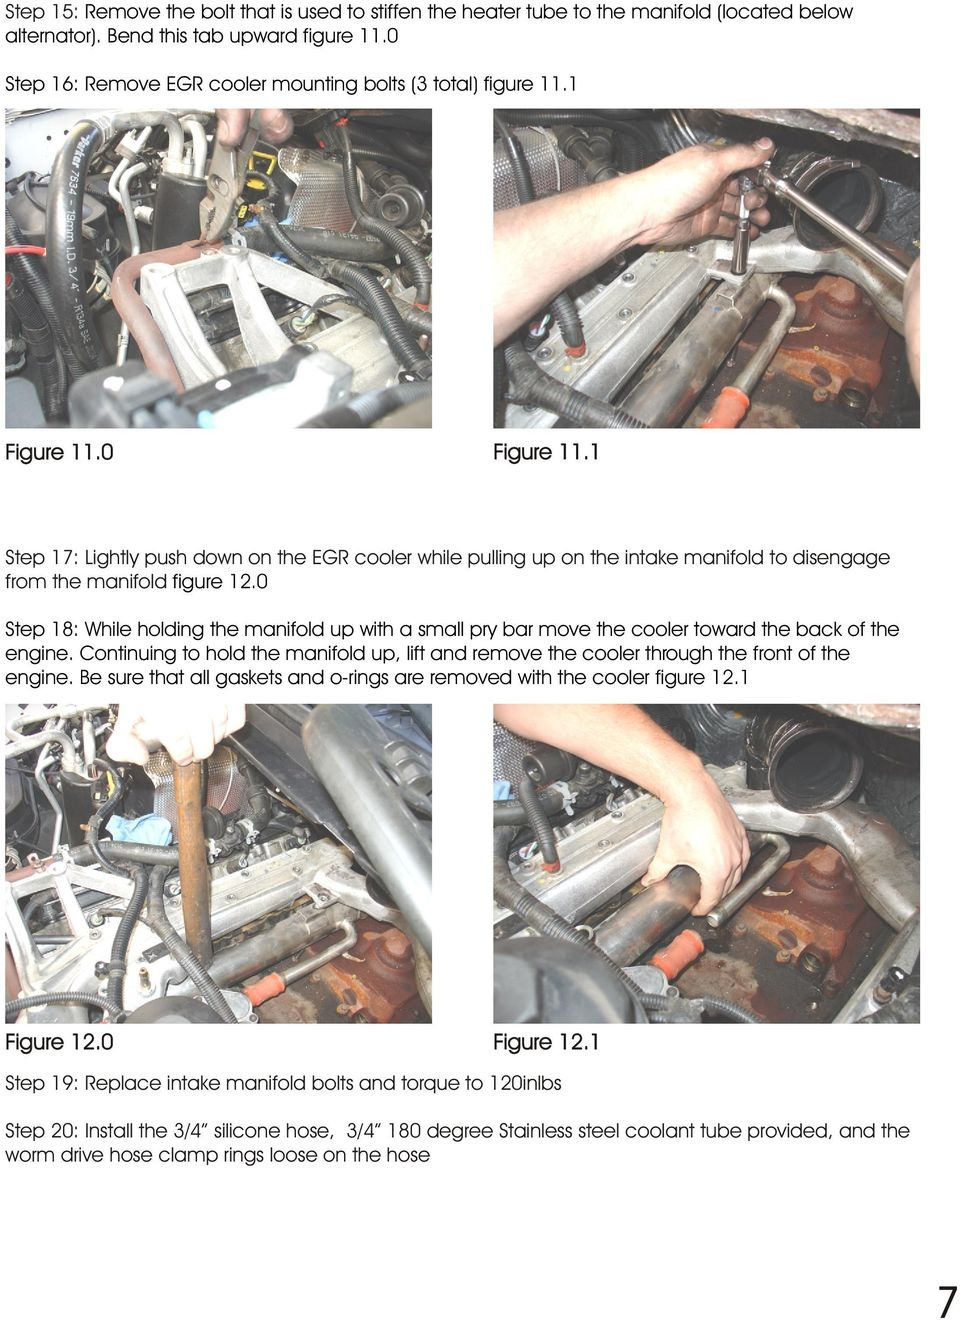 1 Step 17: Lightly push down on the EGR cooler while pulling up on the intake manifold to disengage from the manifold figure 12.